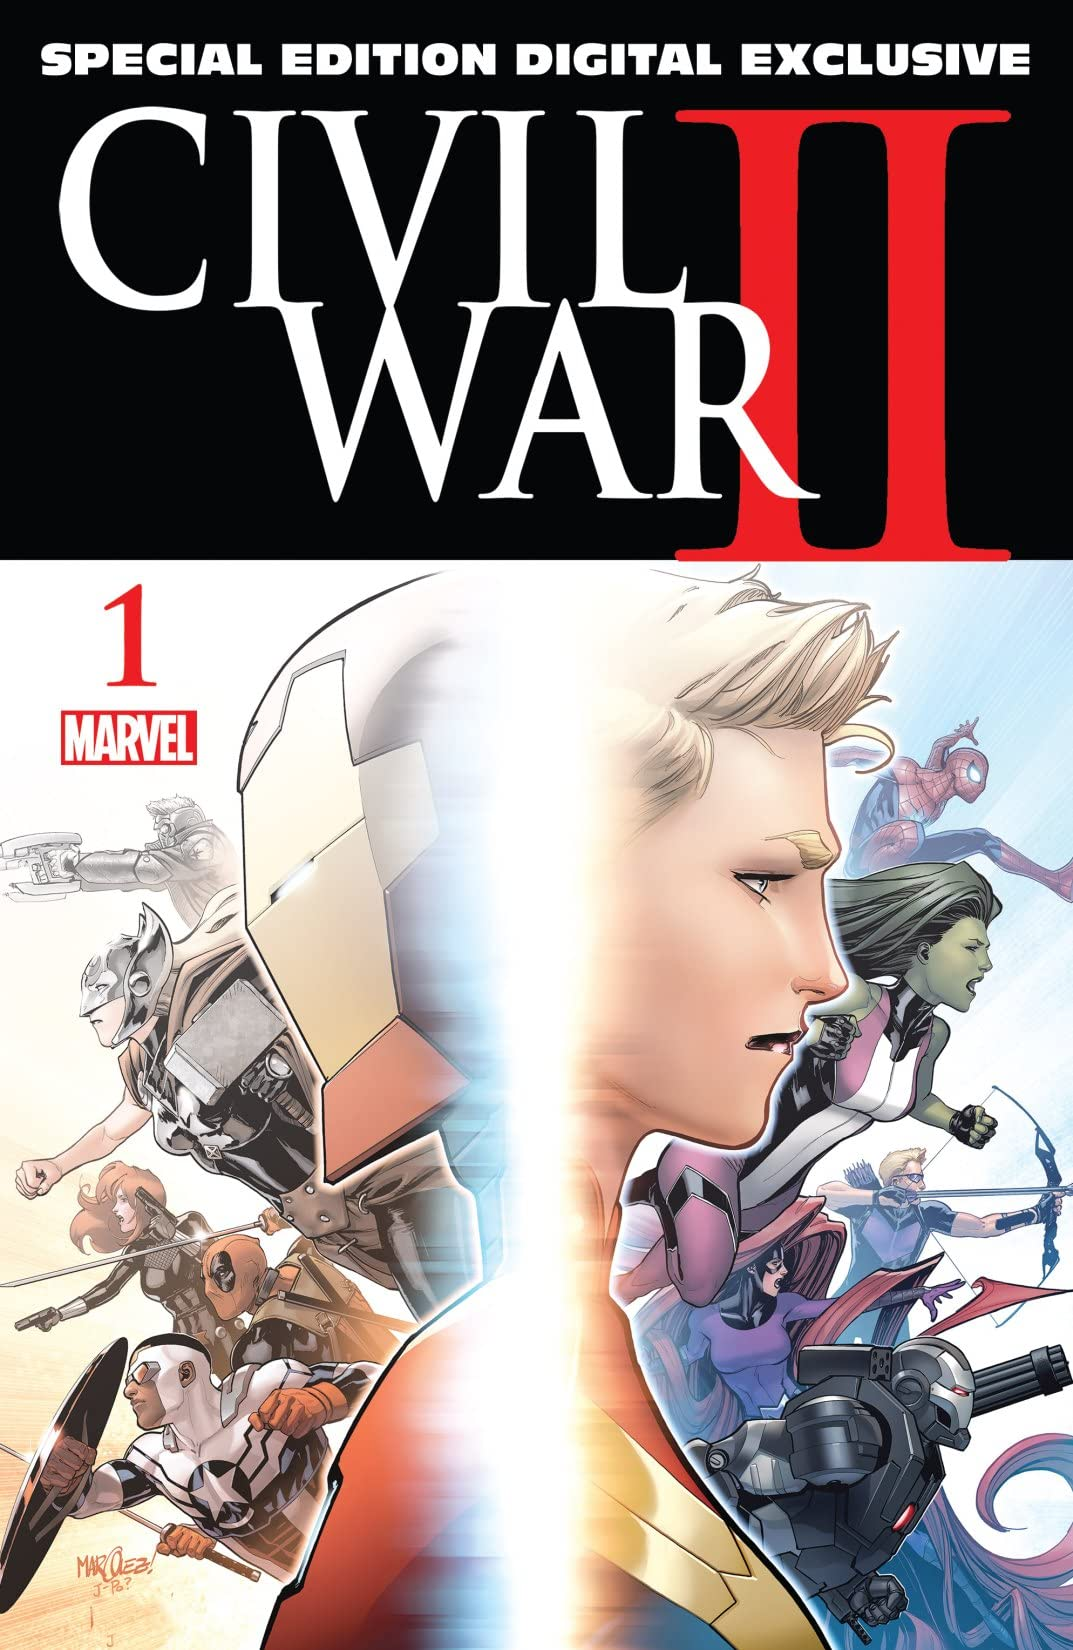 Civil War II (2016) #1: Special Edition - Digital Exclusive